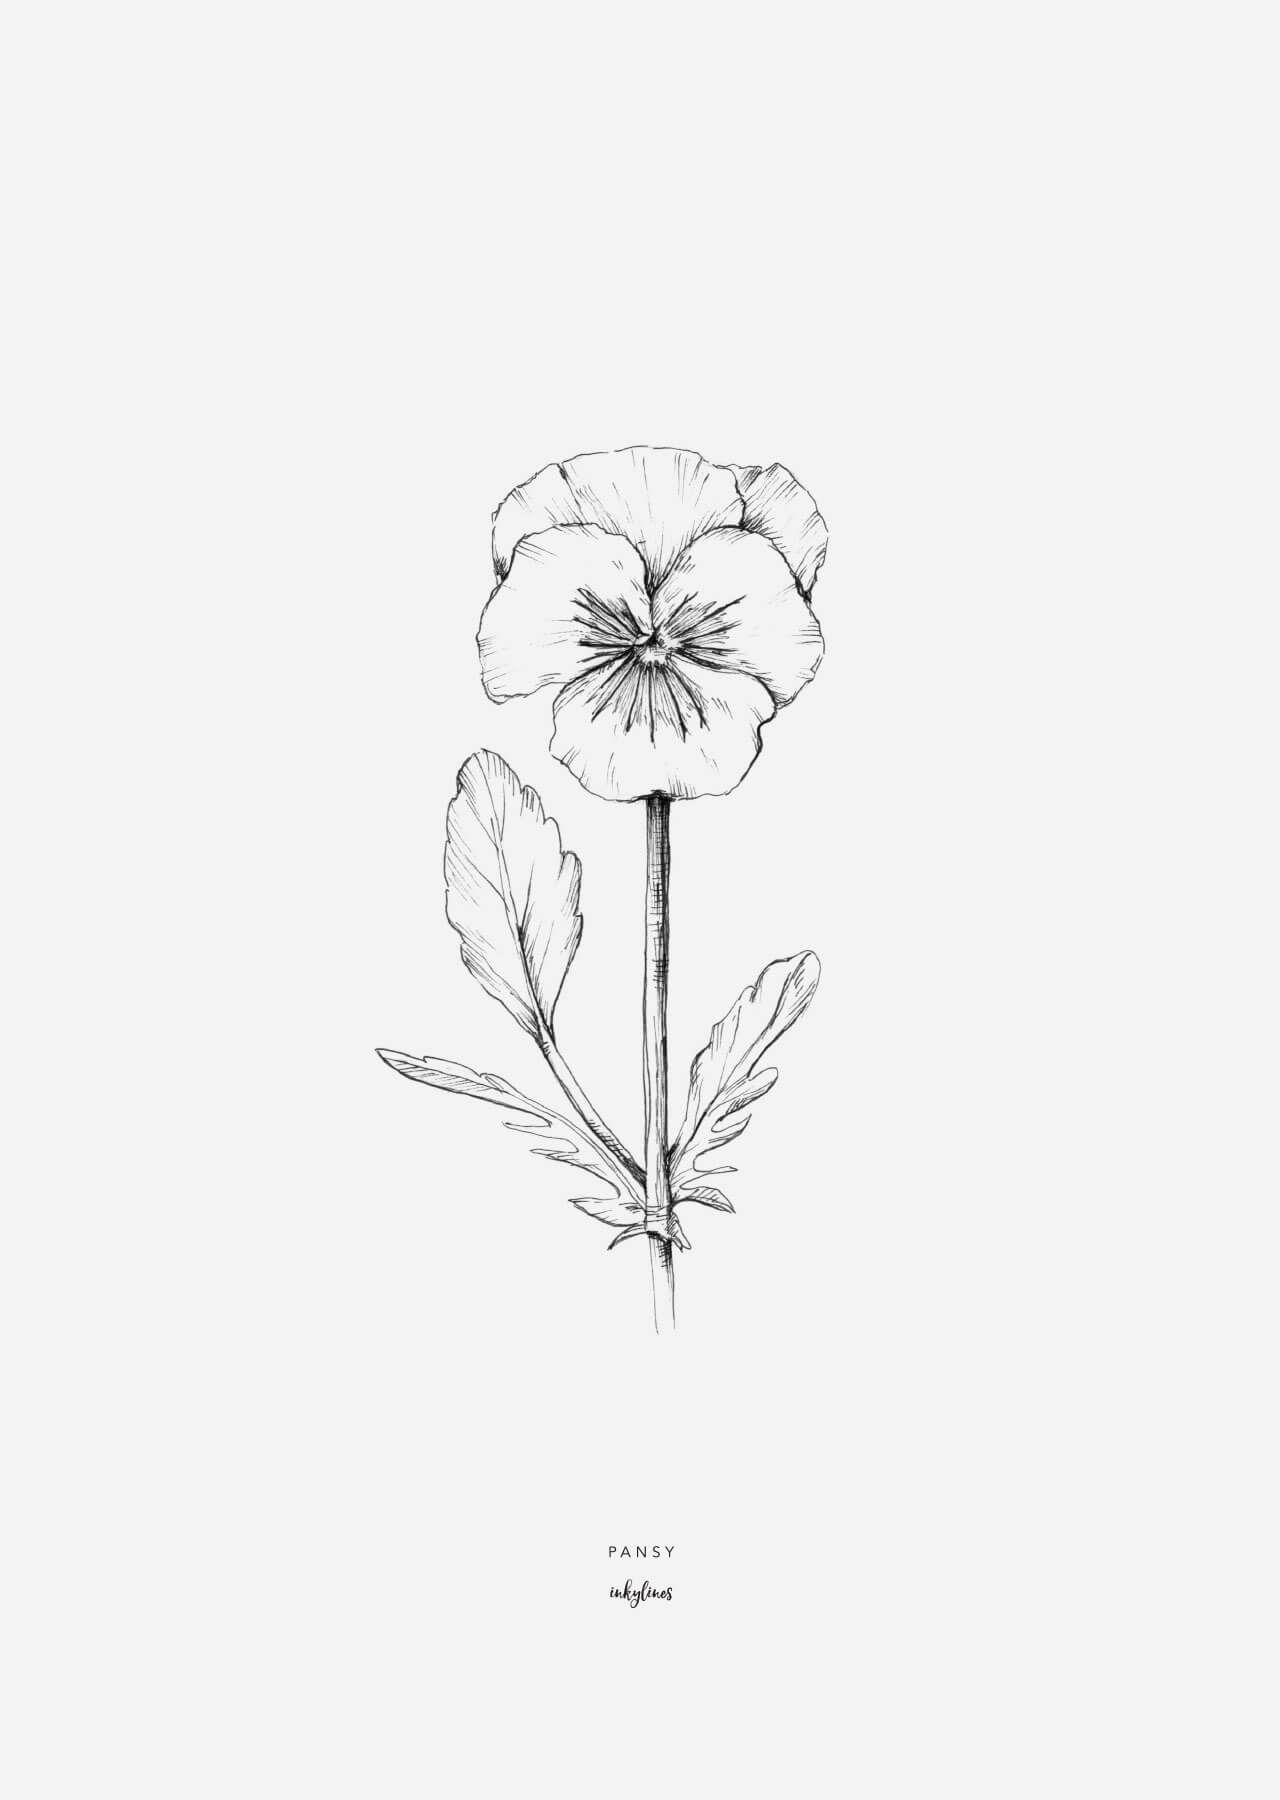 Pansy Drawing : pansy, drawing, Pansies, Flowers,, Pansy, Tattoo,, Flower, Drawing